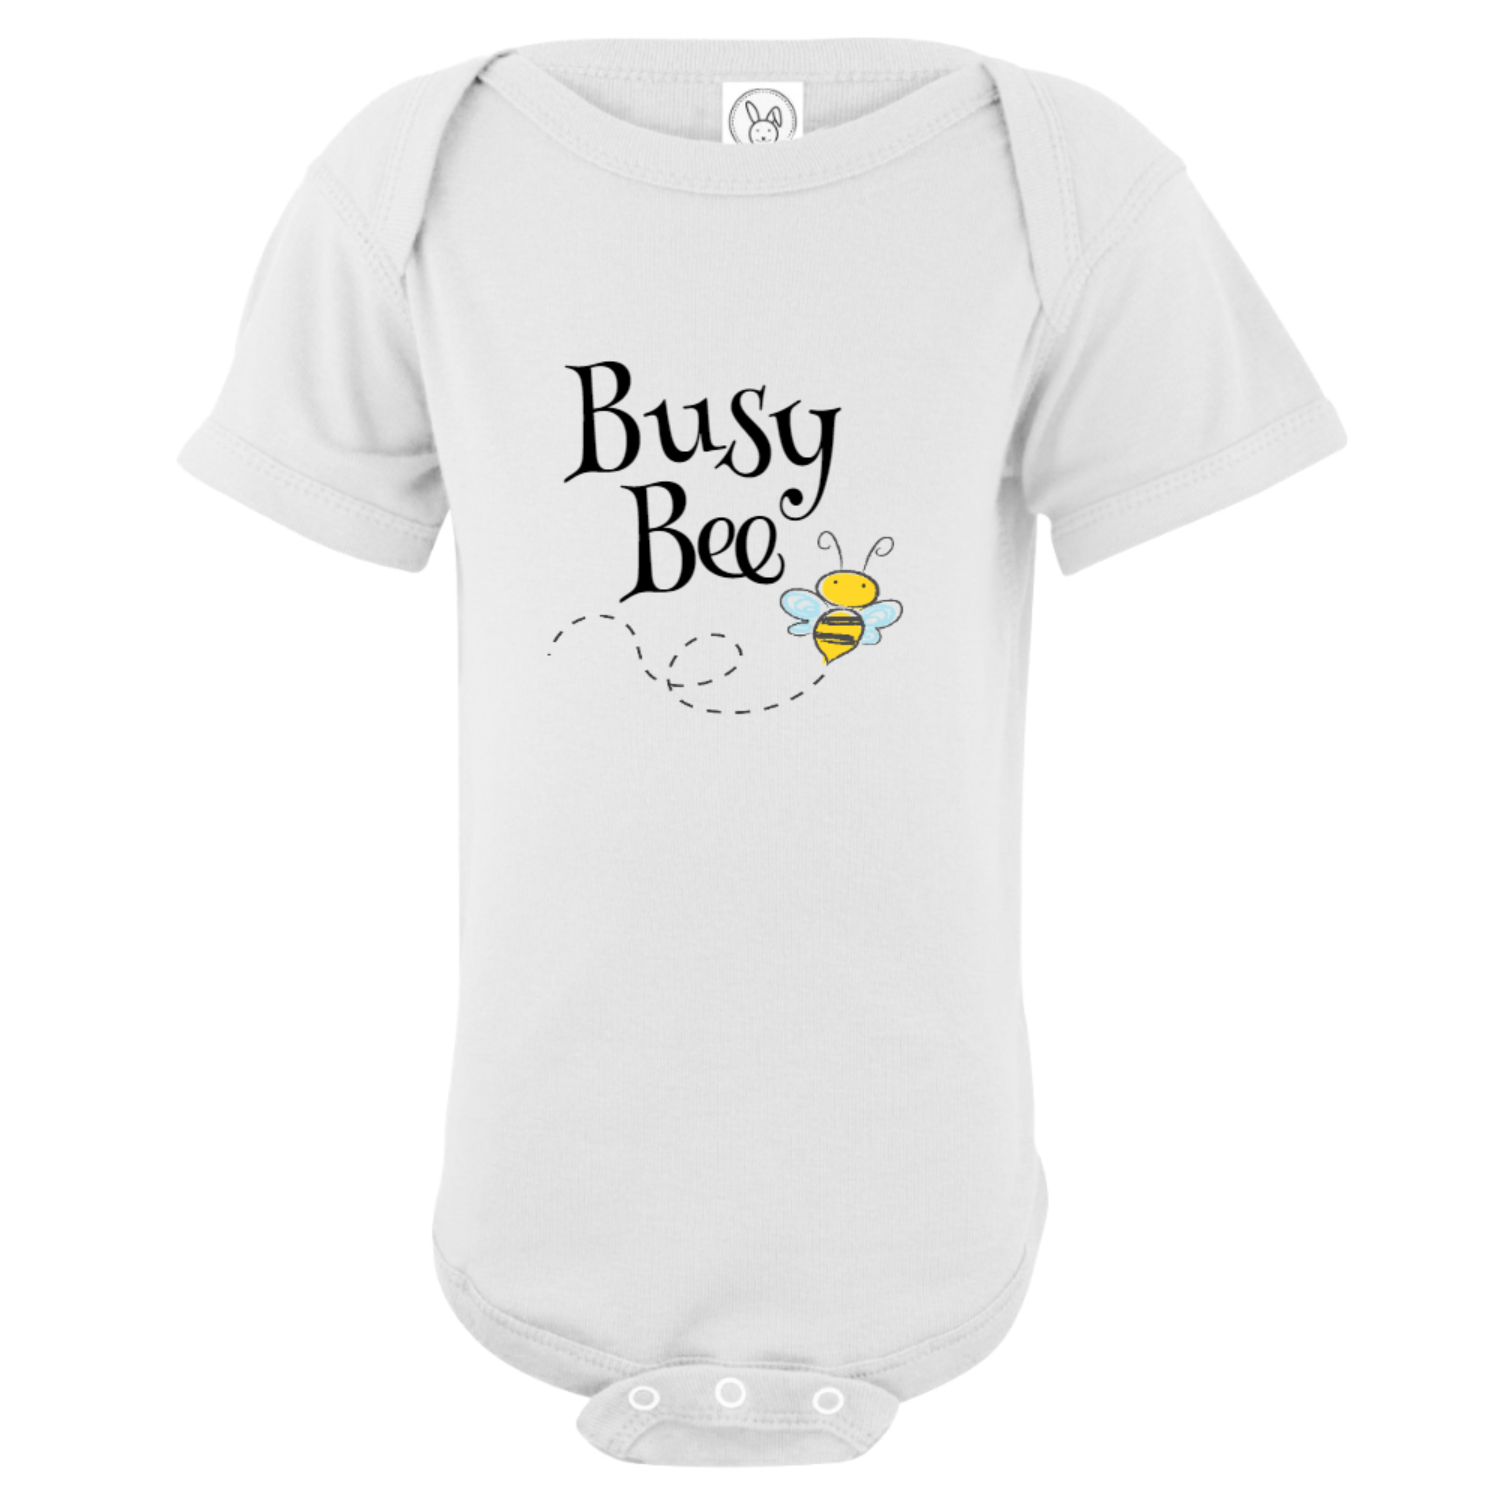 Busy Bee Baby Bodysuit White